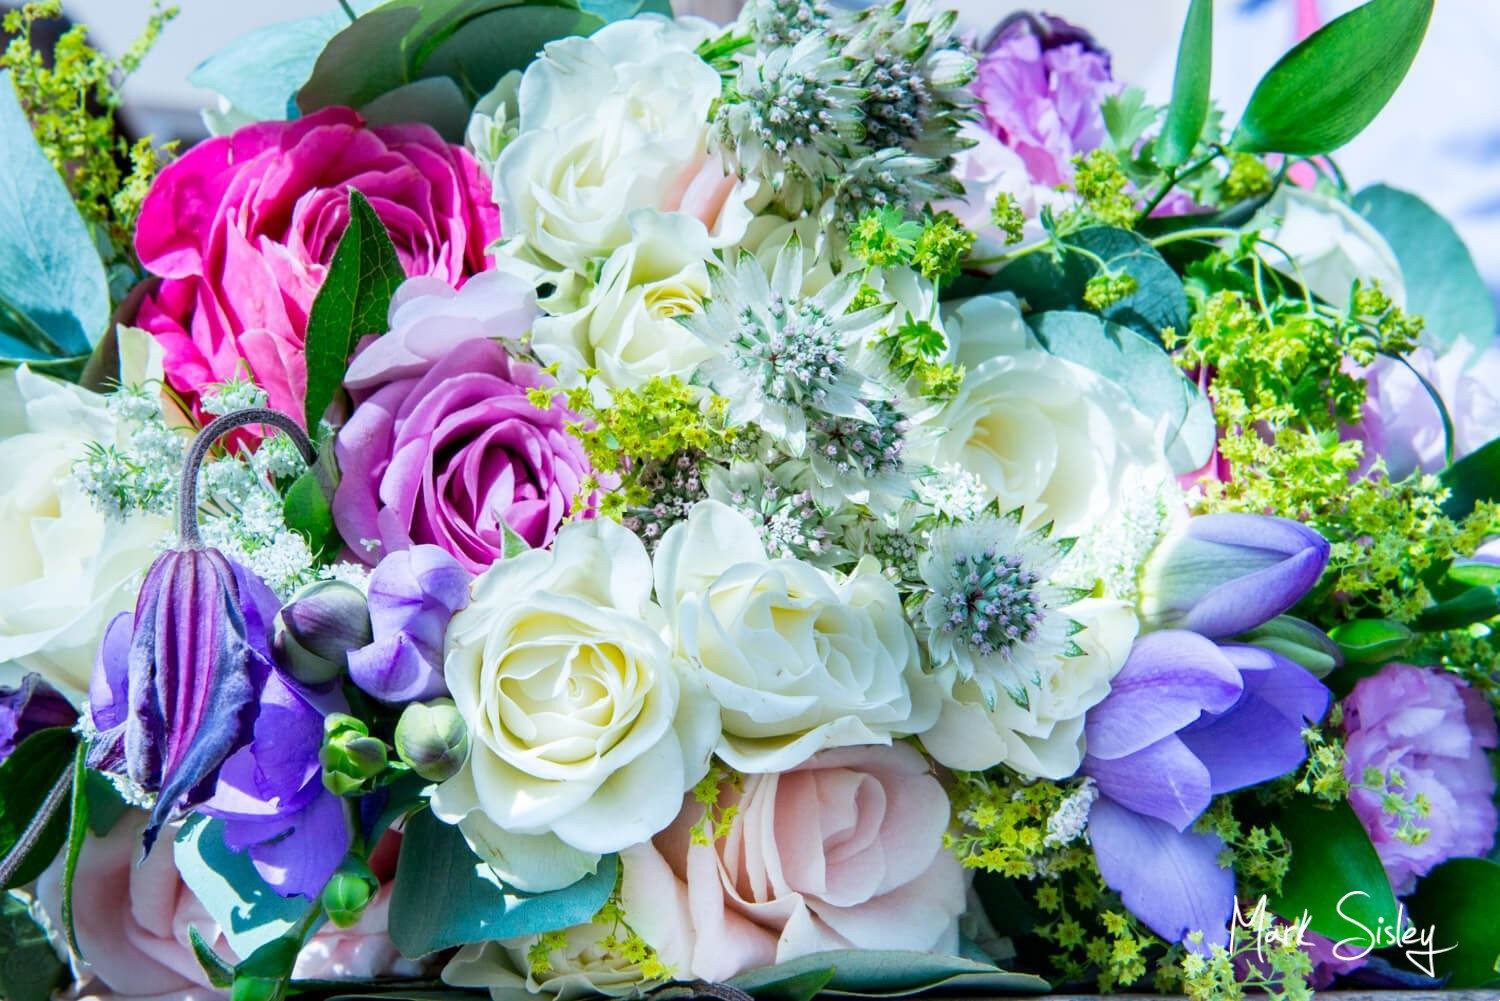 Taplow House Hotel wedding photos of the bridal bouquet